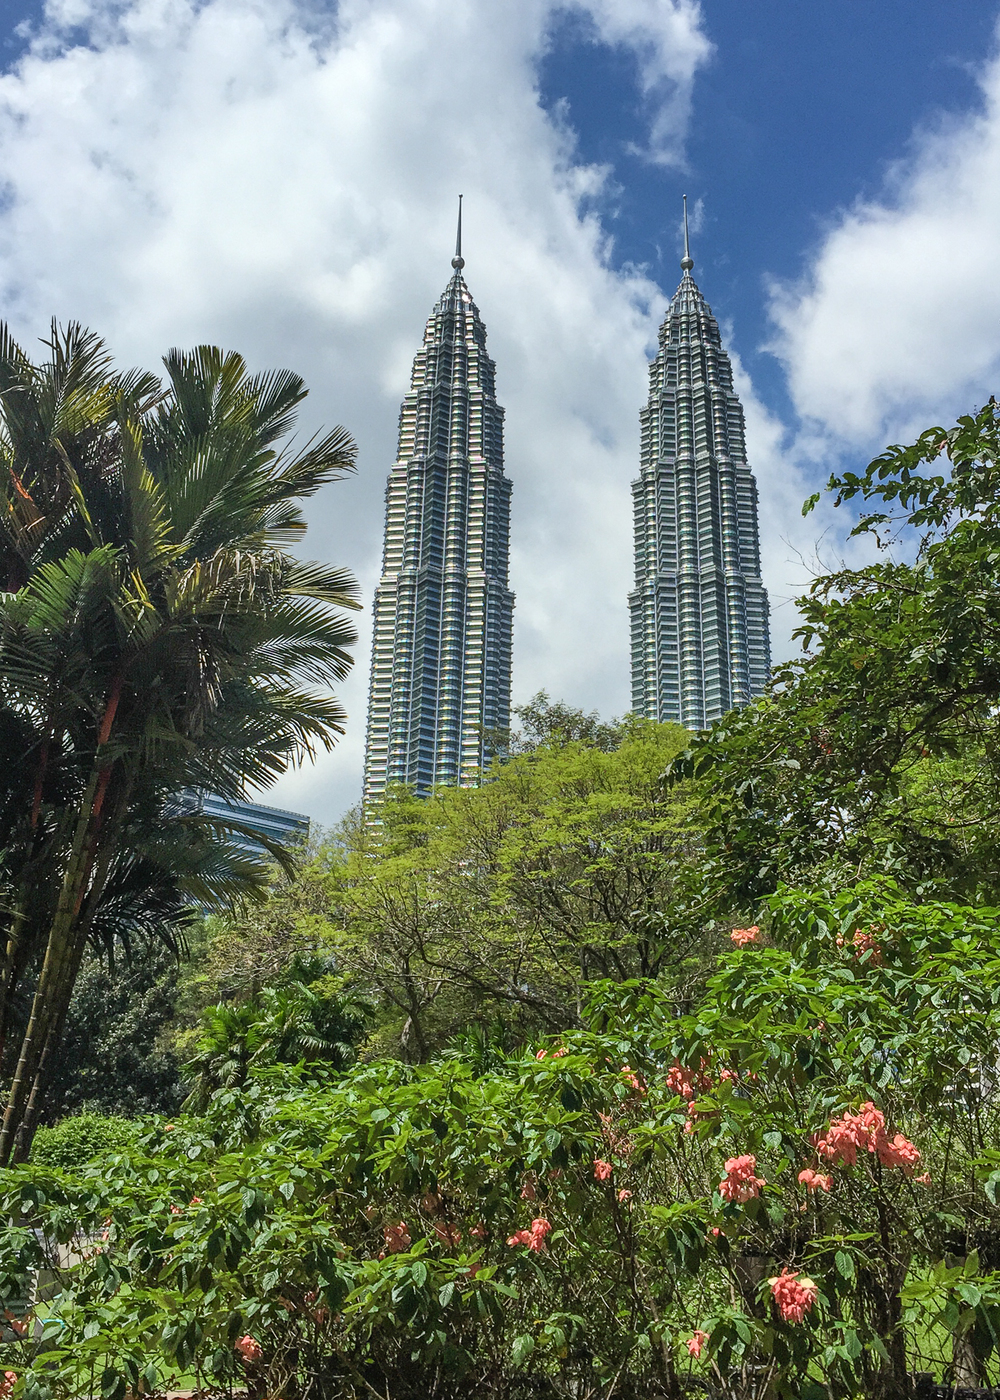 The Petronas Towers dominate the KL skyline. A view from the park under our hotel.